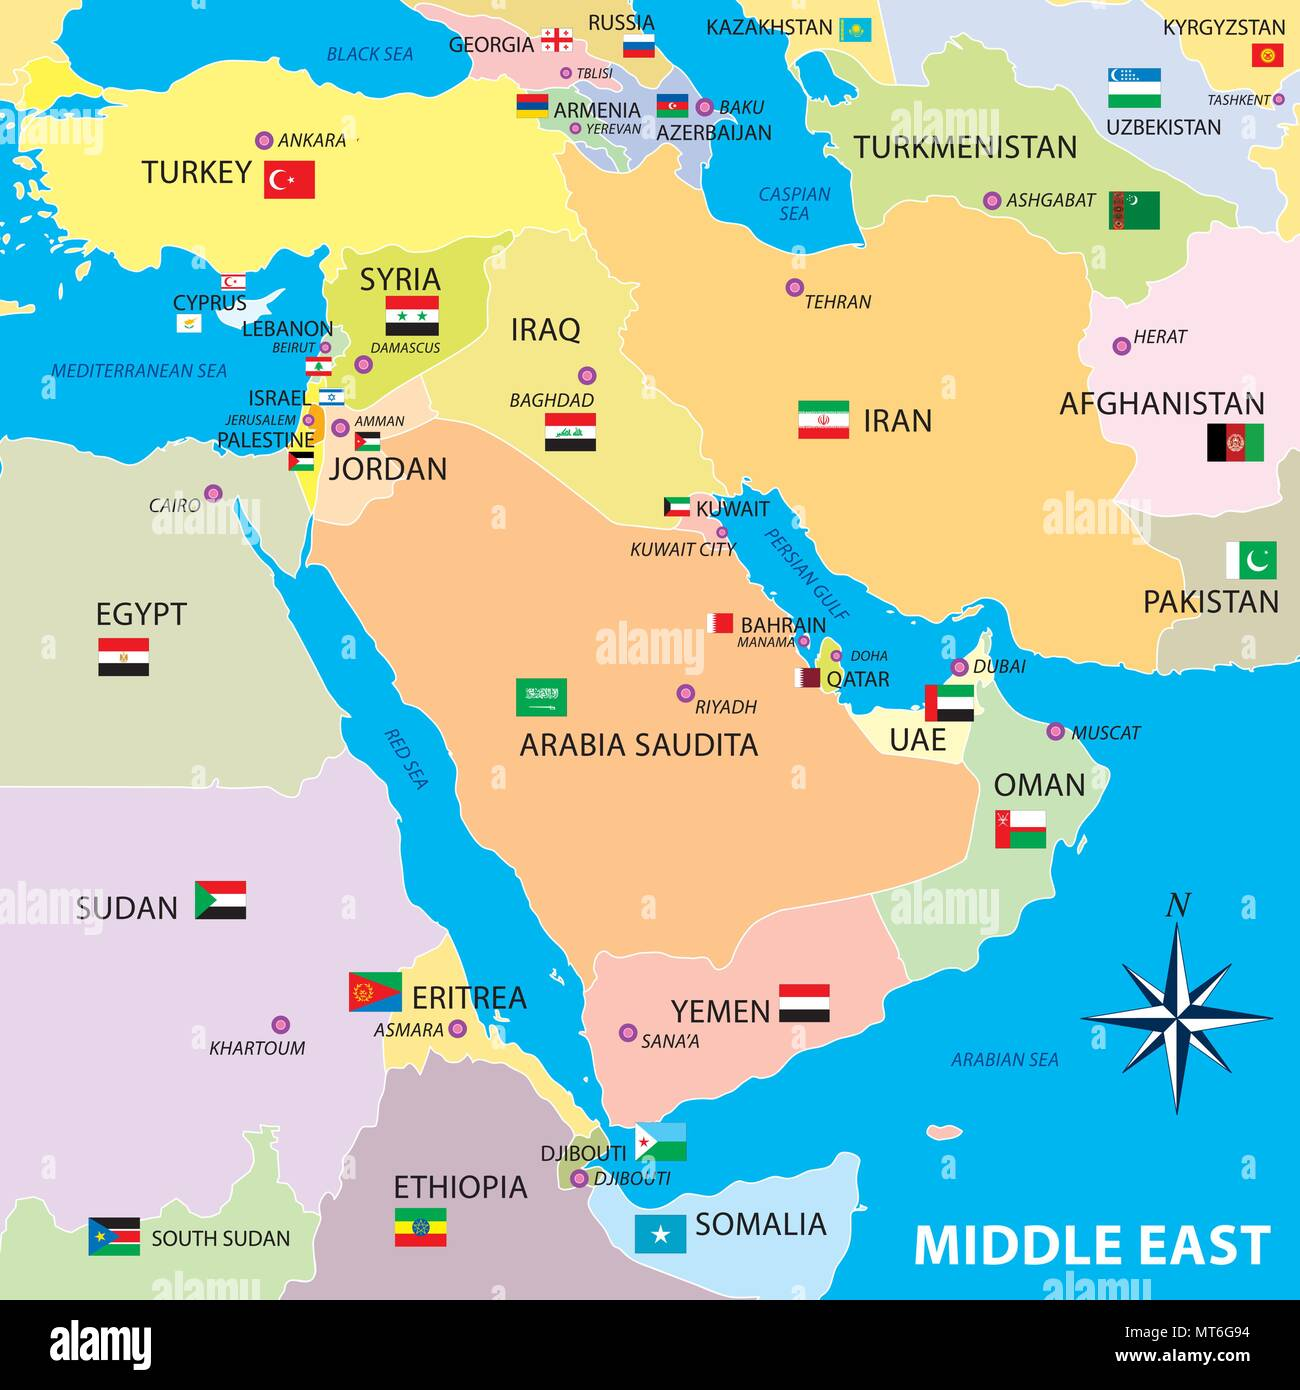 Middle east map with borders and flags - Stock Image